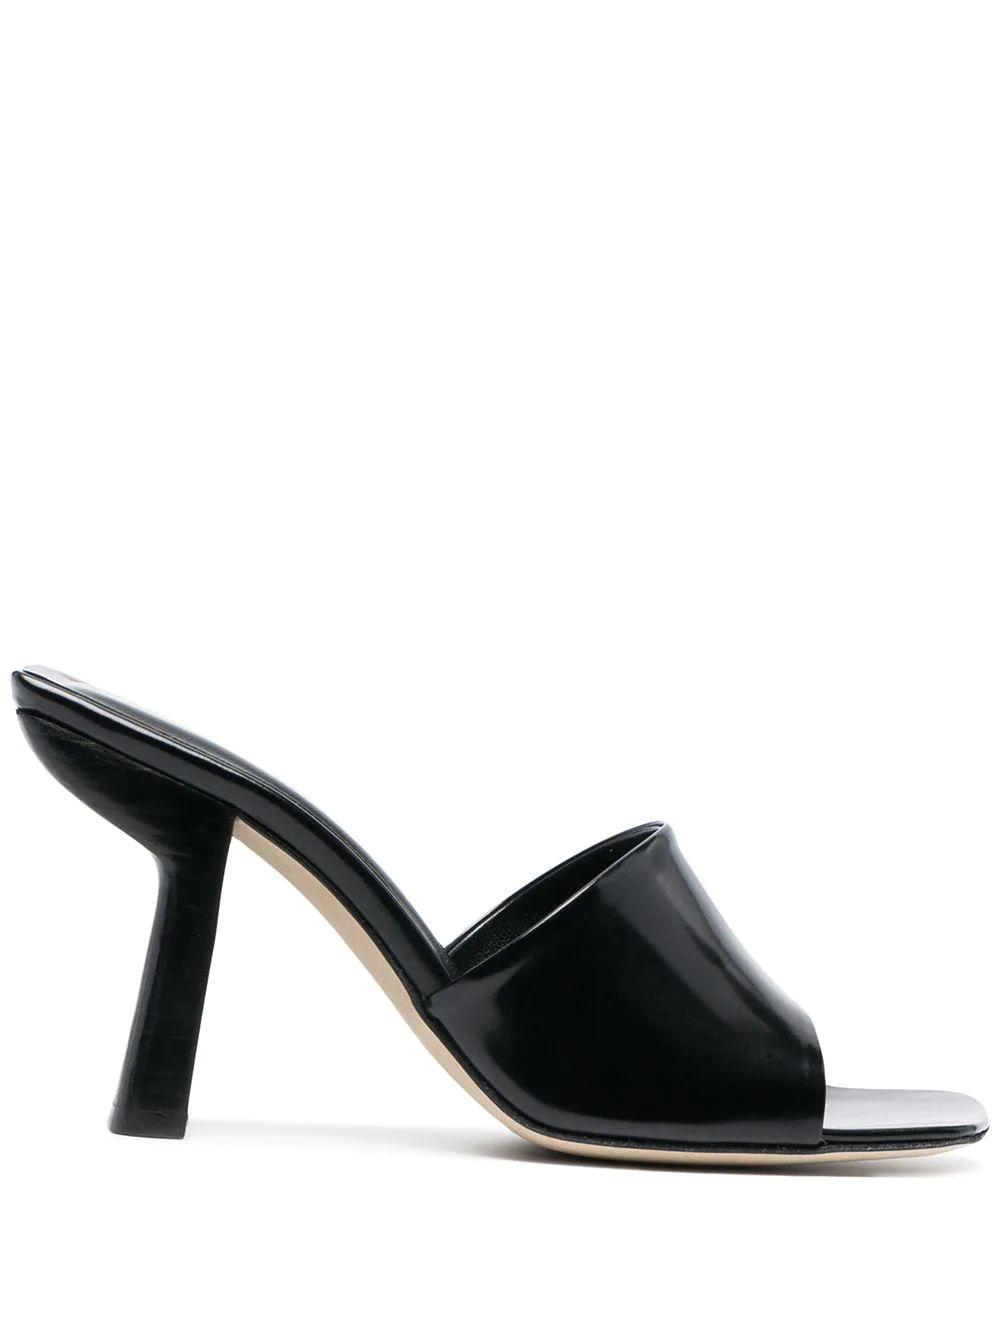 Liliana Semi- Patent Mule Item # 21CALILIHBLW